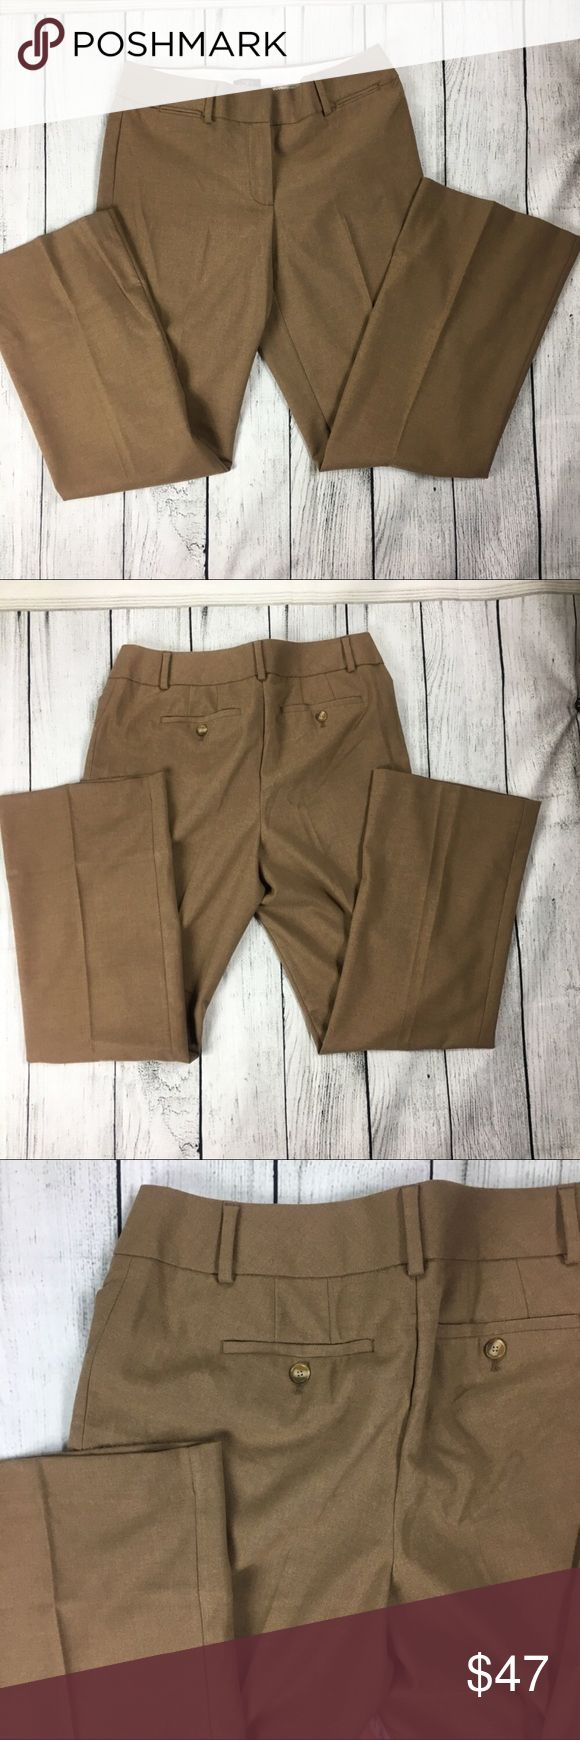 Stunning brown slacks 💕 Absolutely stunning tan slacks. They are super comfy and very stylish. They are the Julie trouser style. The loft has by far the best and most comfiest slacks. They are brand new but do not have tags. Got as a gift but too big for me. TWo back usable pockets. LOFT Pants Trousers